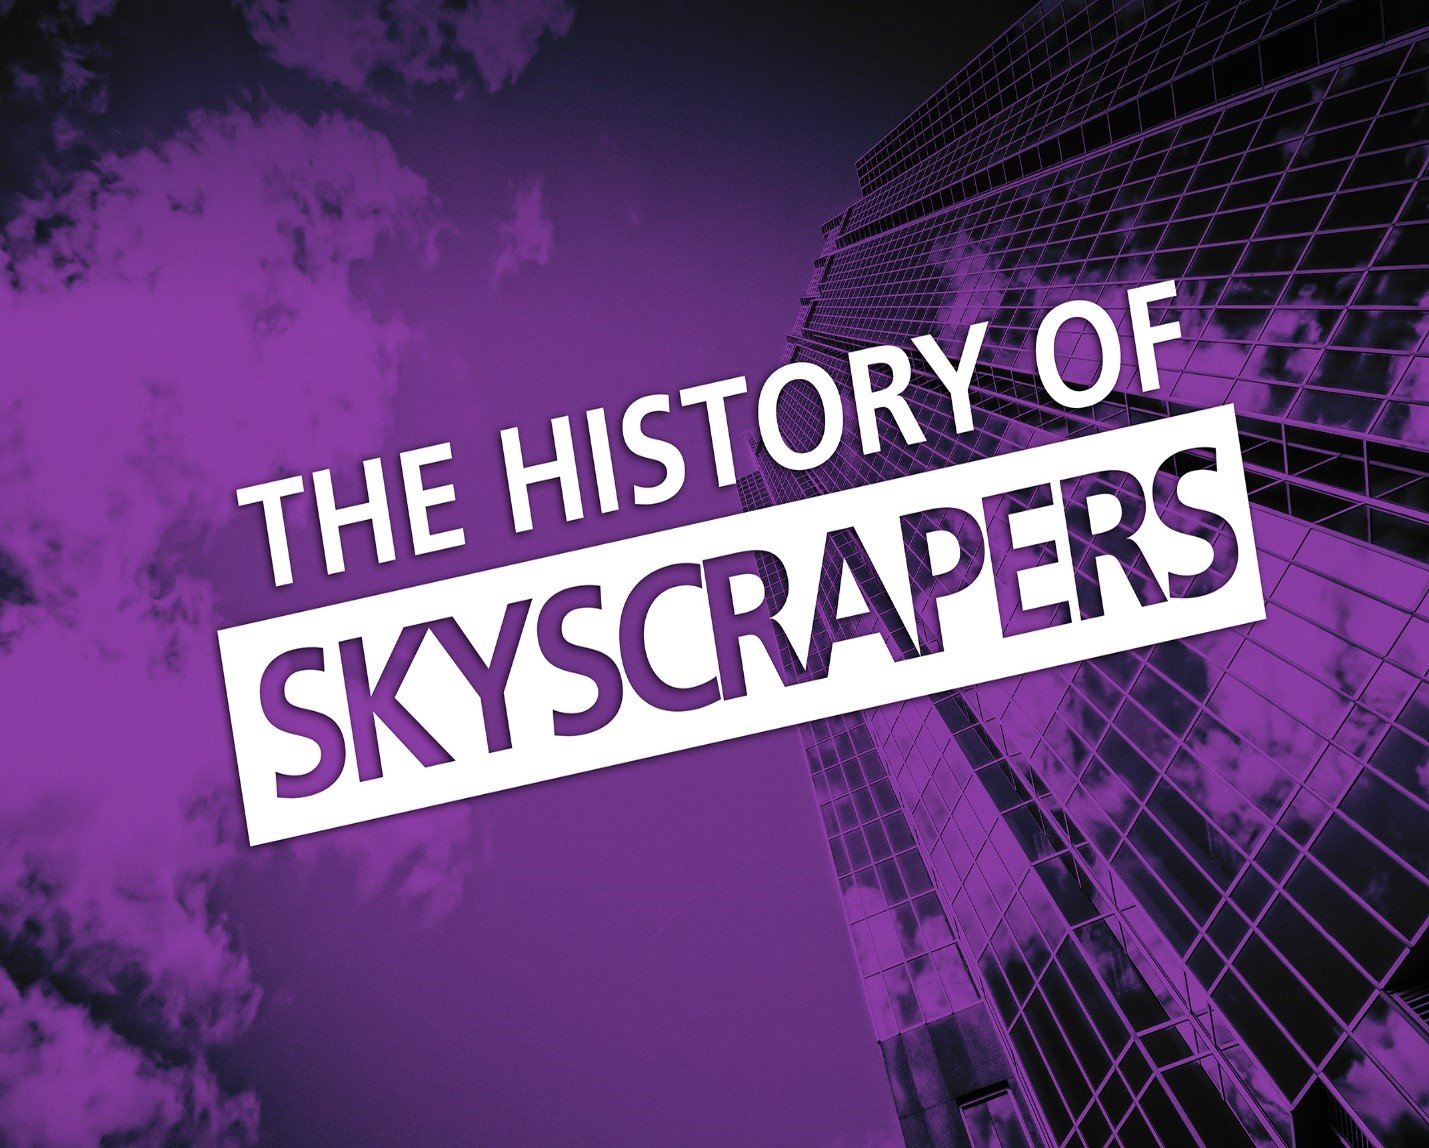 history of skyscrapers